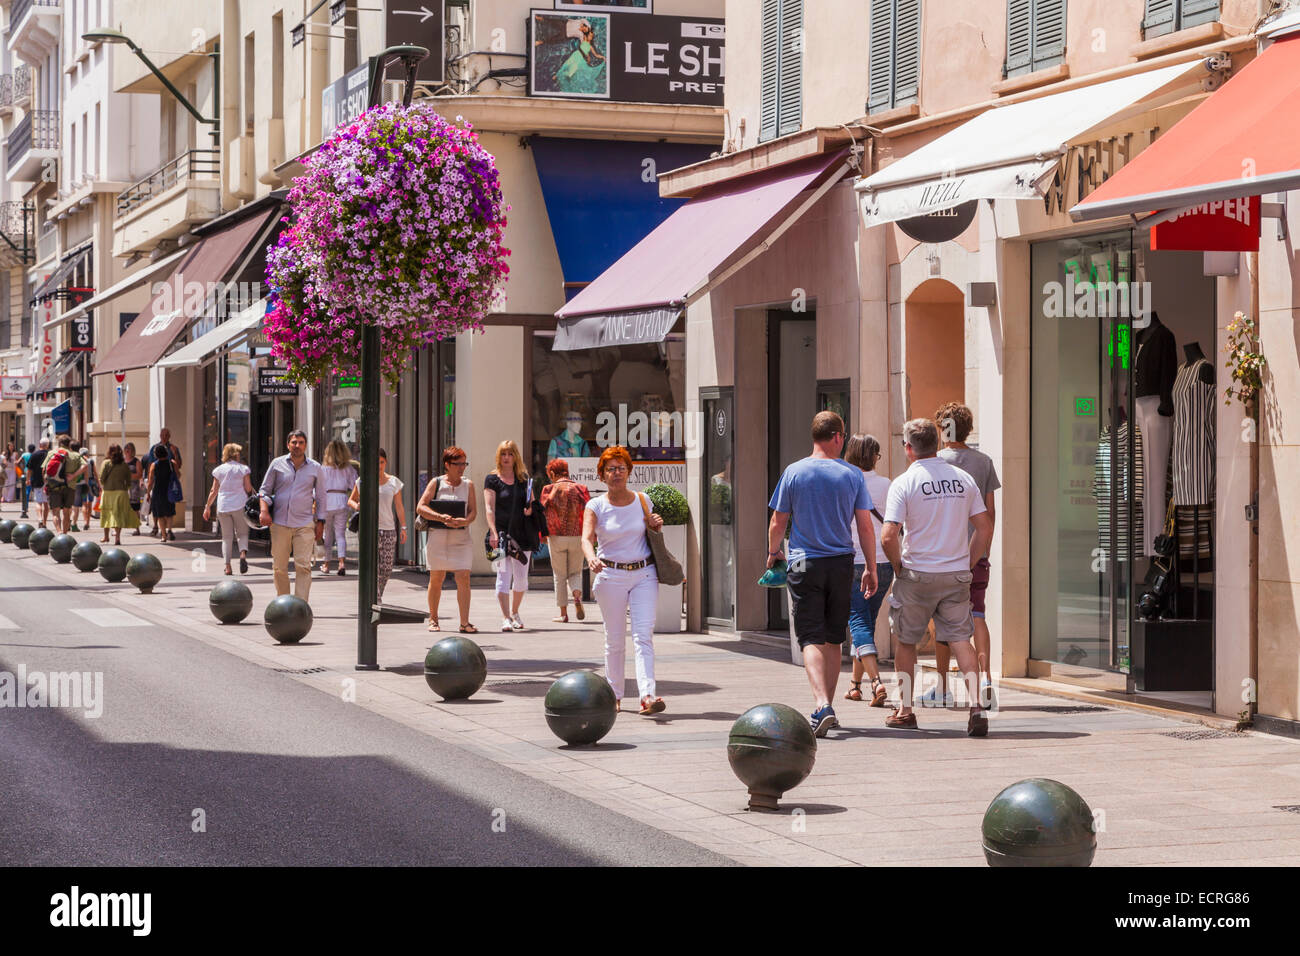 SHOPS, PEOPLE SHOPPING, RUE D'ANTIBES, SHOPPING STREET, CANNES, COTE D'AZUR, PROVENCE, FRANCE - Stock Image